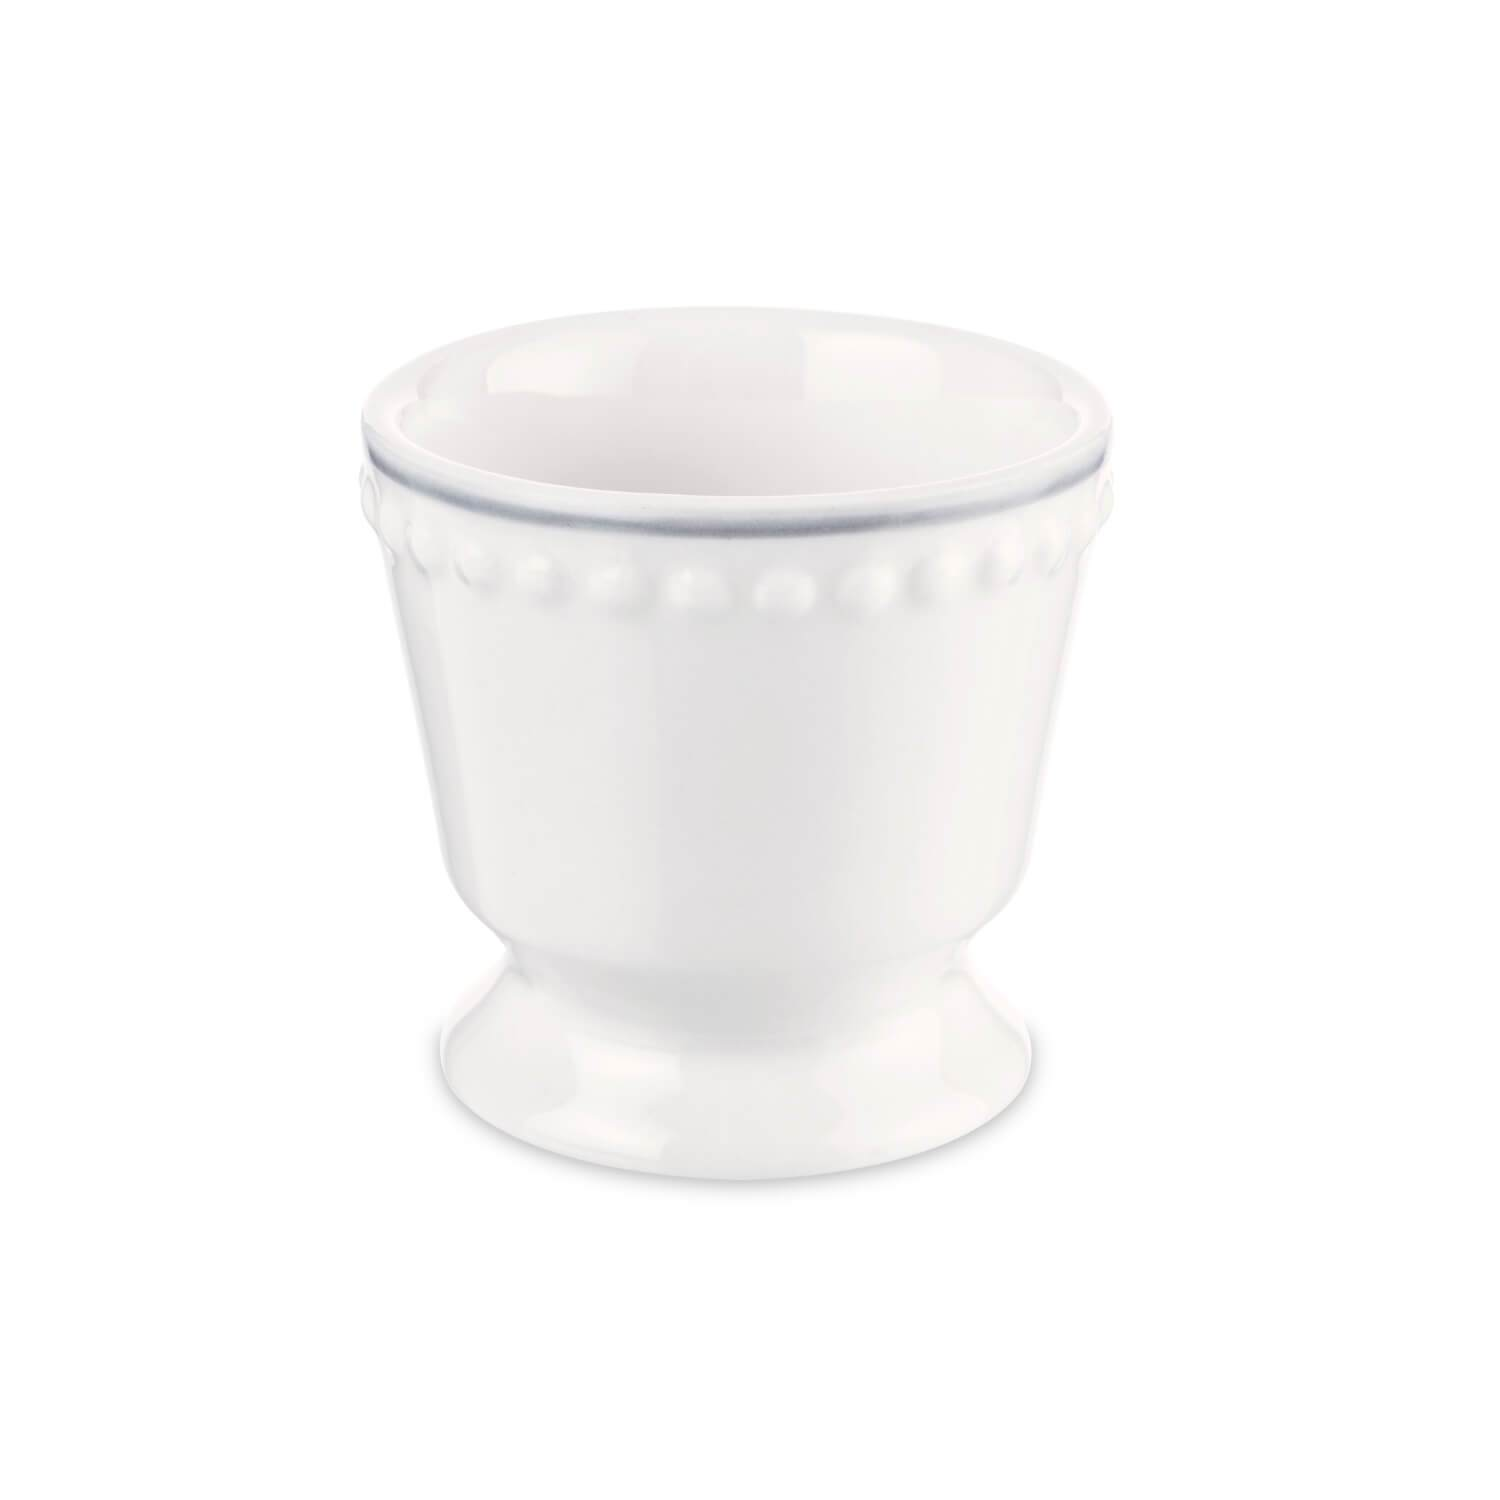 SIGNATURE COLLECTION EGG CUP SET x4